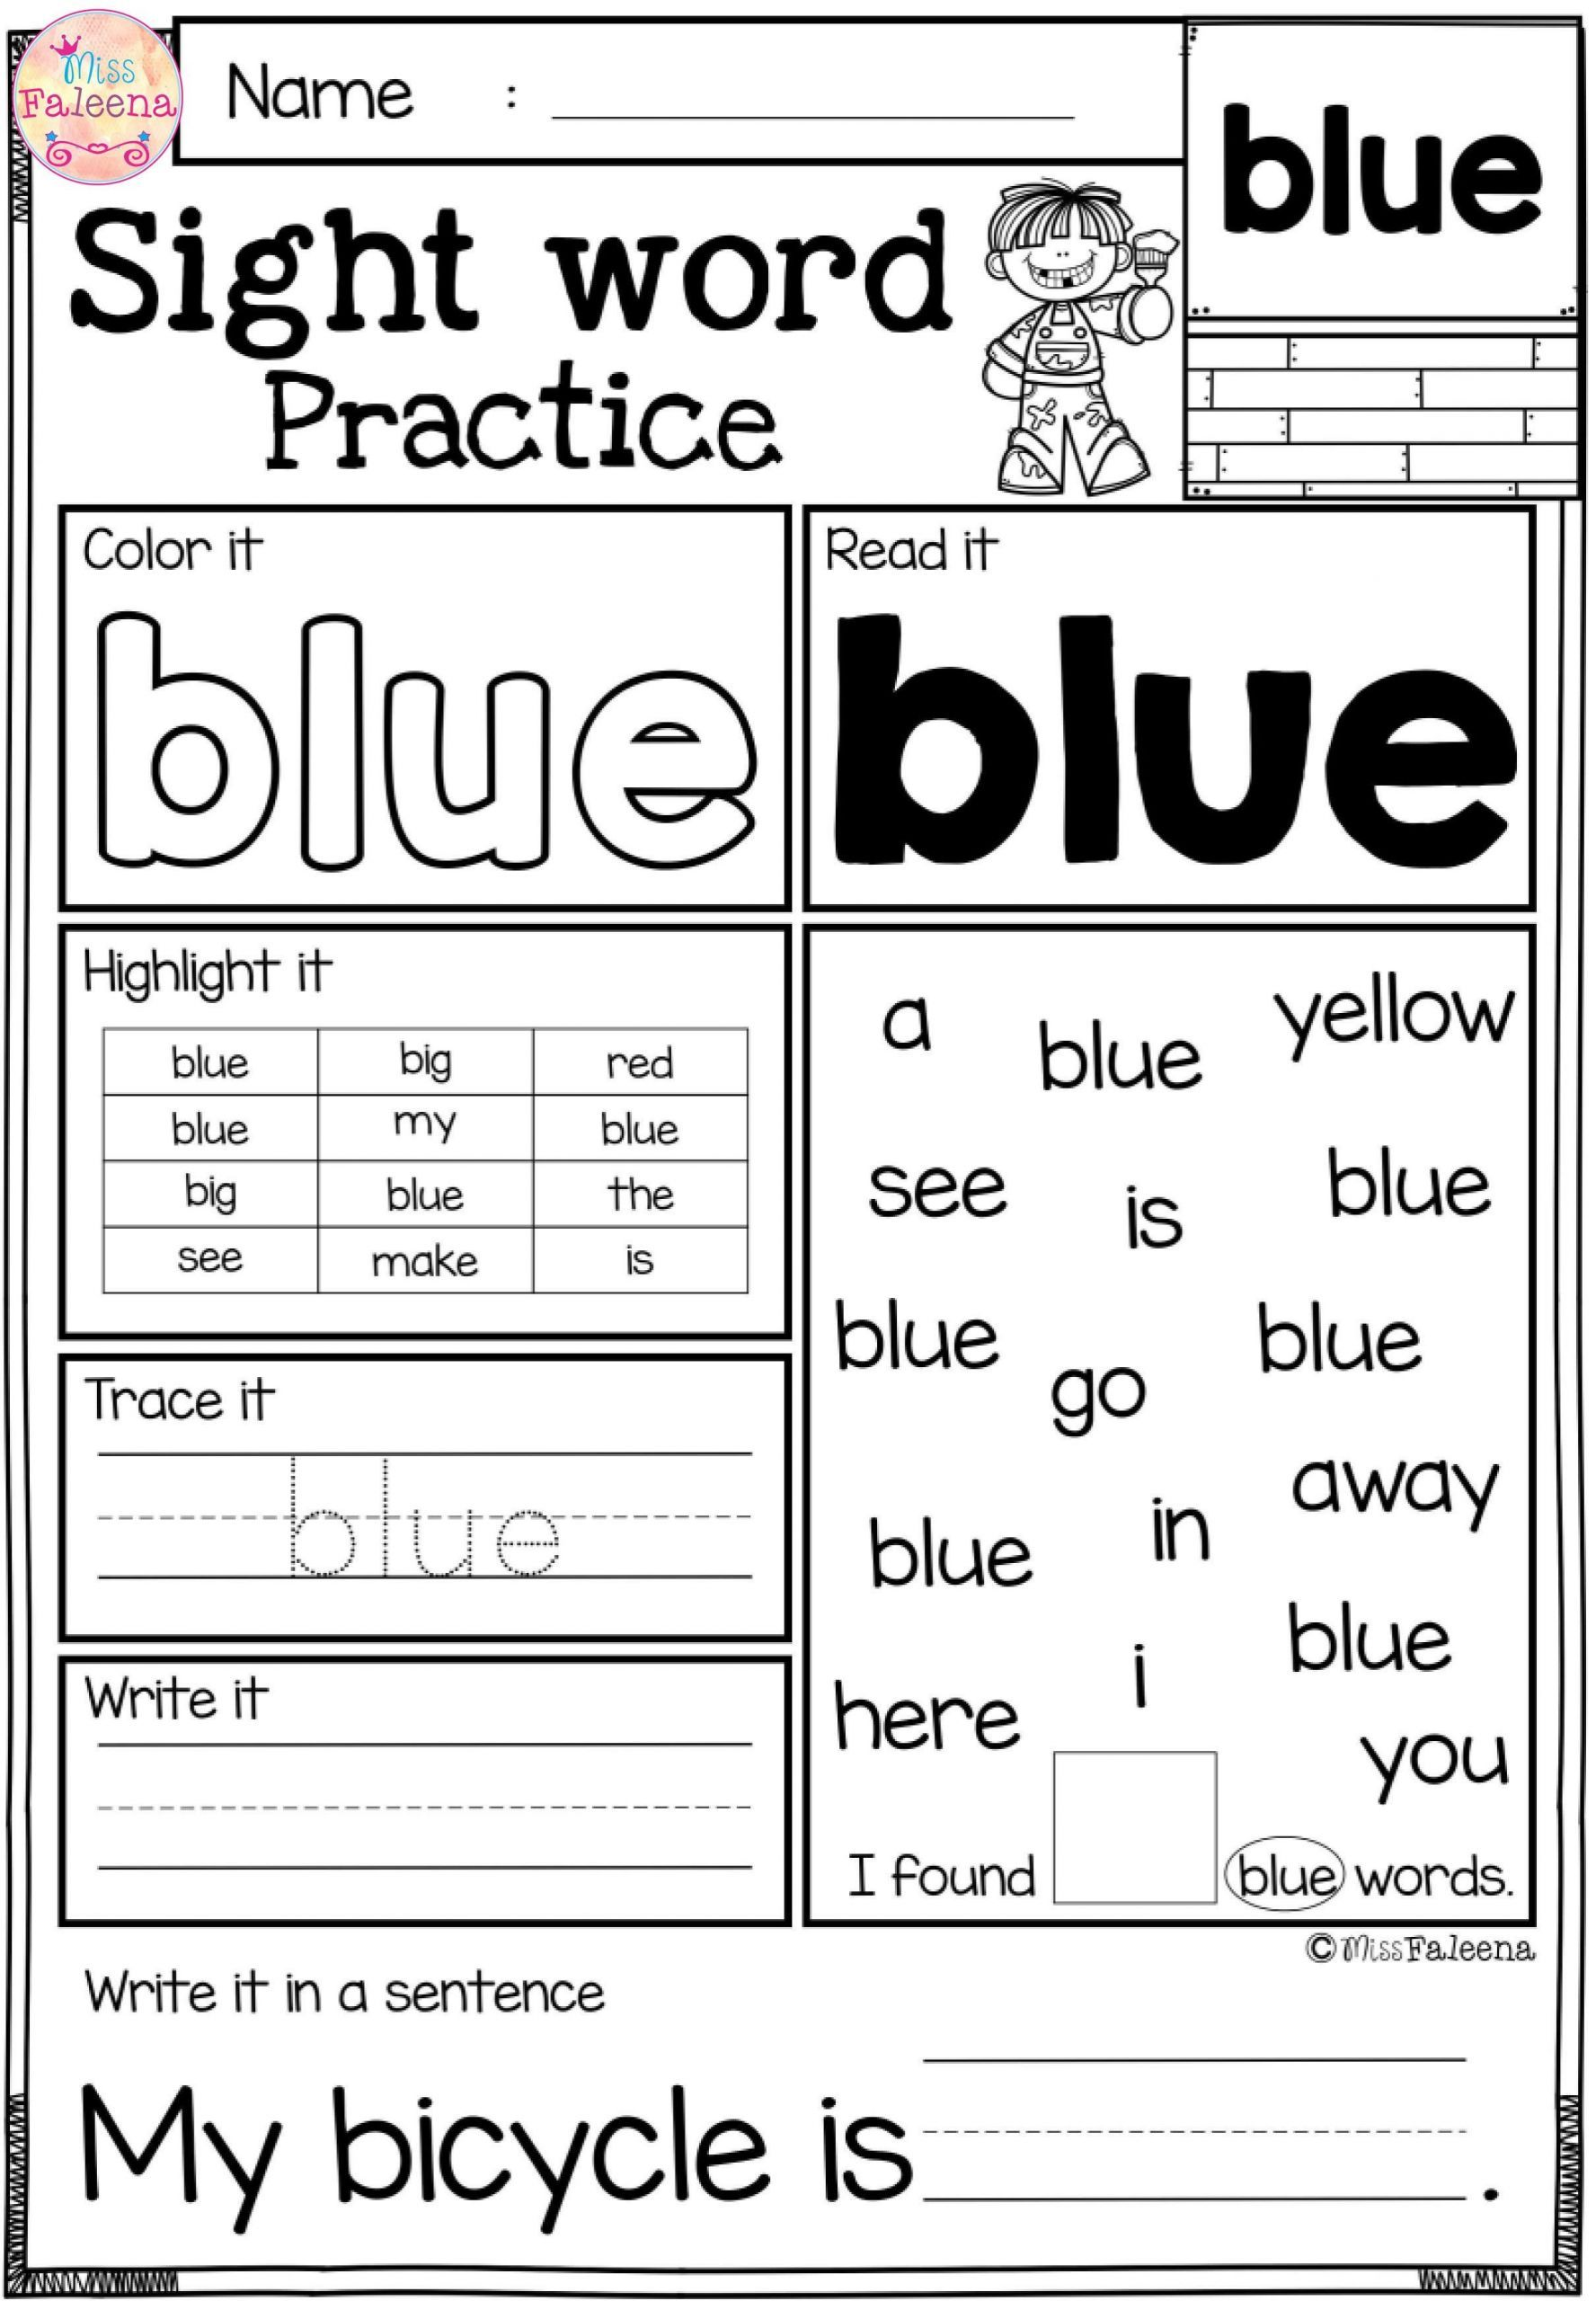 3 Worksheet Free Preschool Kindergarten Worksheets Practice Words Play Words Kindergarten Worksheets Sight Words Sight Words Kindergarten Preschool Sight Words